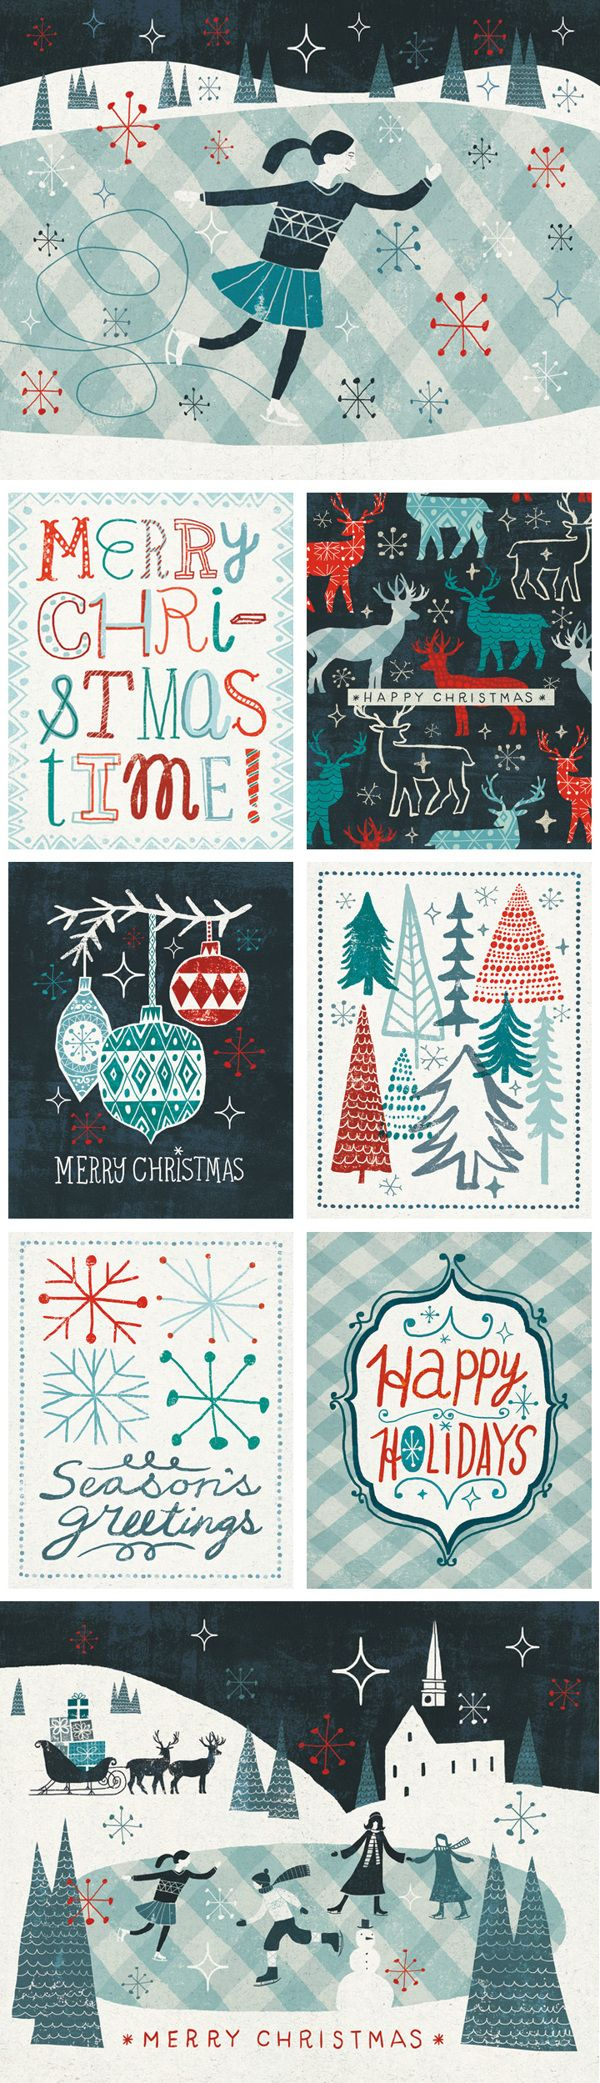 Merry Christmastime Collection by Michael Mullen